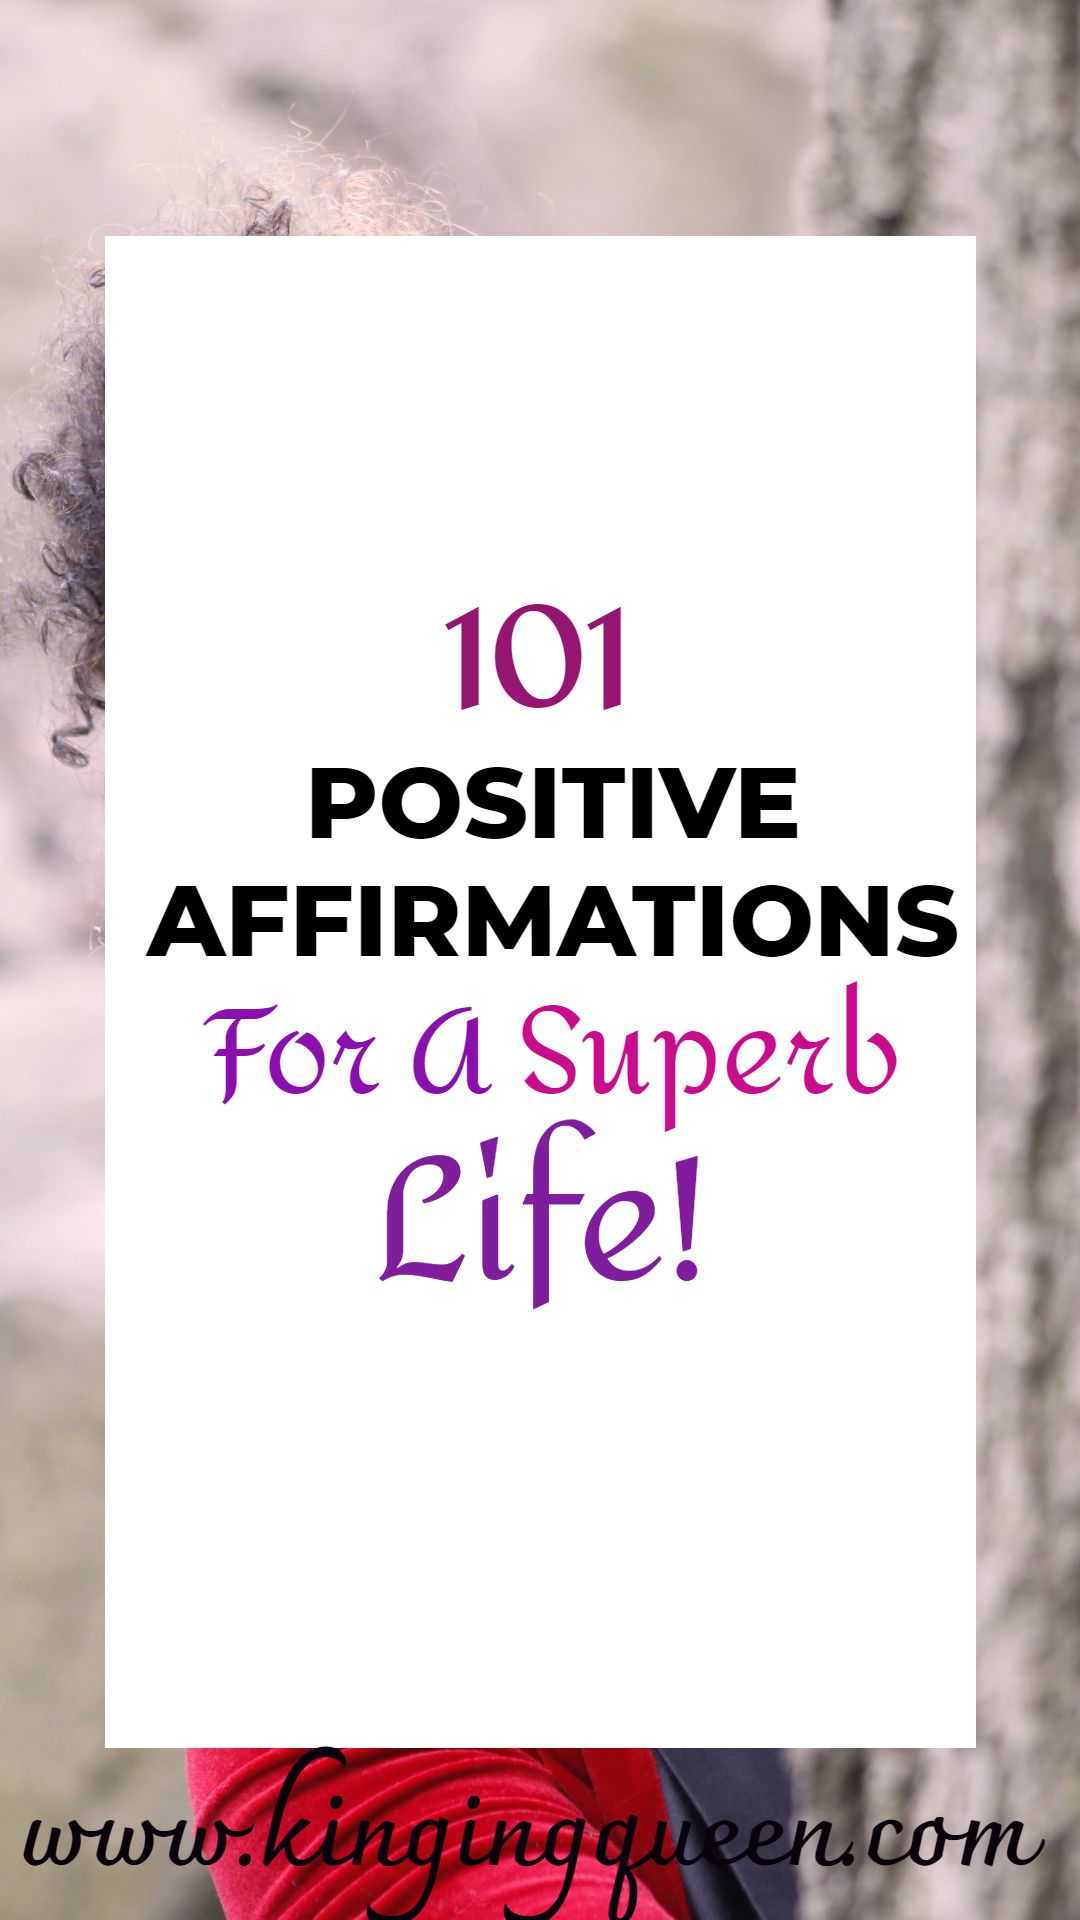 101 Daily Positive Affirmations For A Superb Life